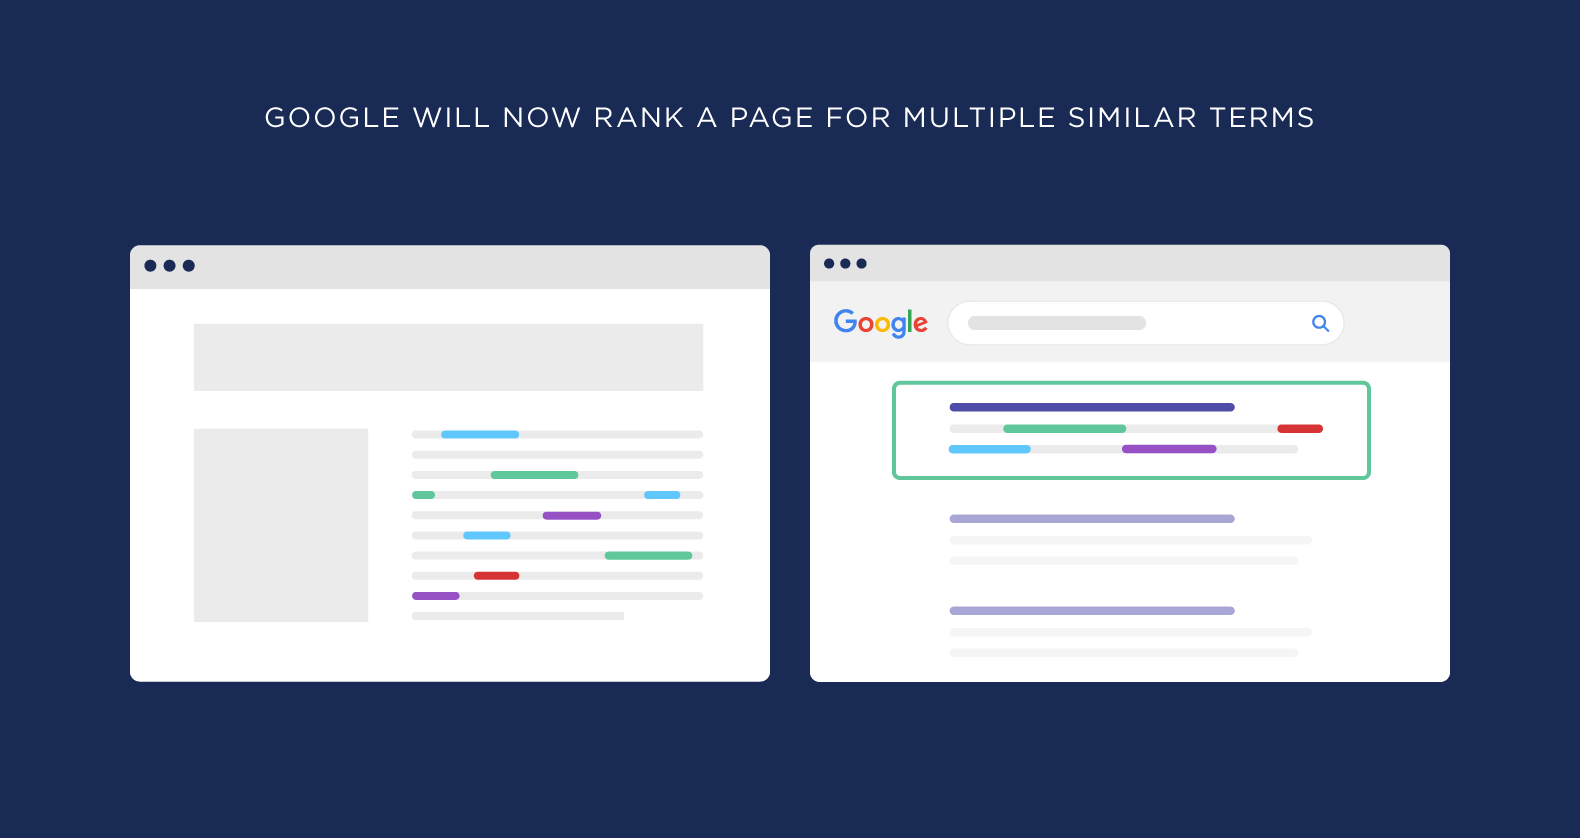 Google will now rank a page for multiple similar terms